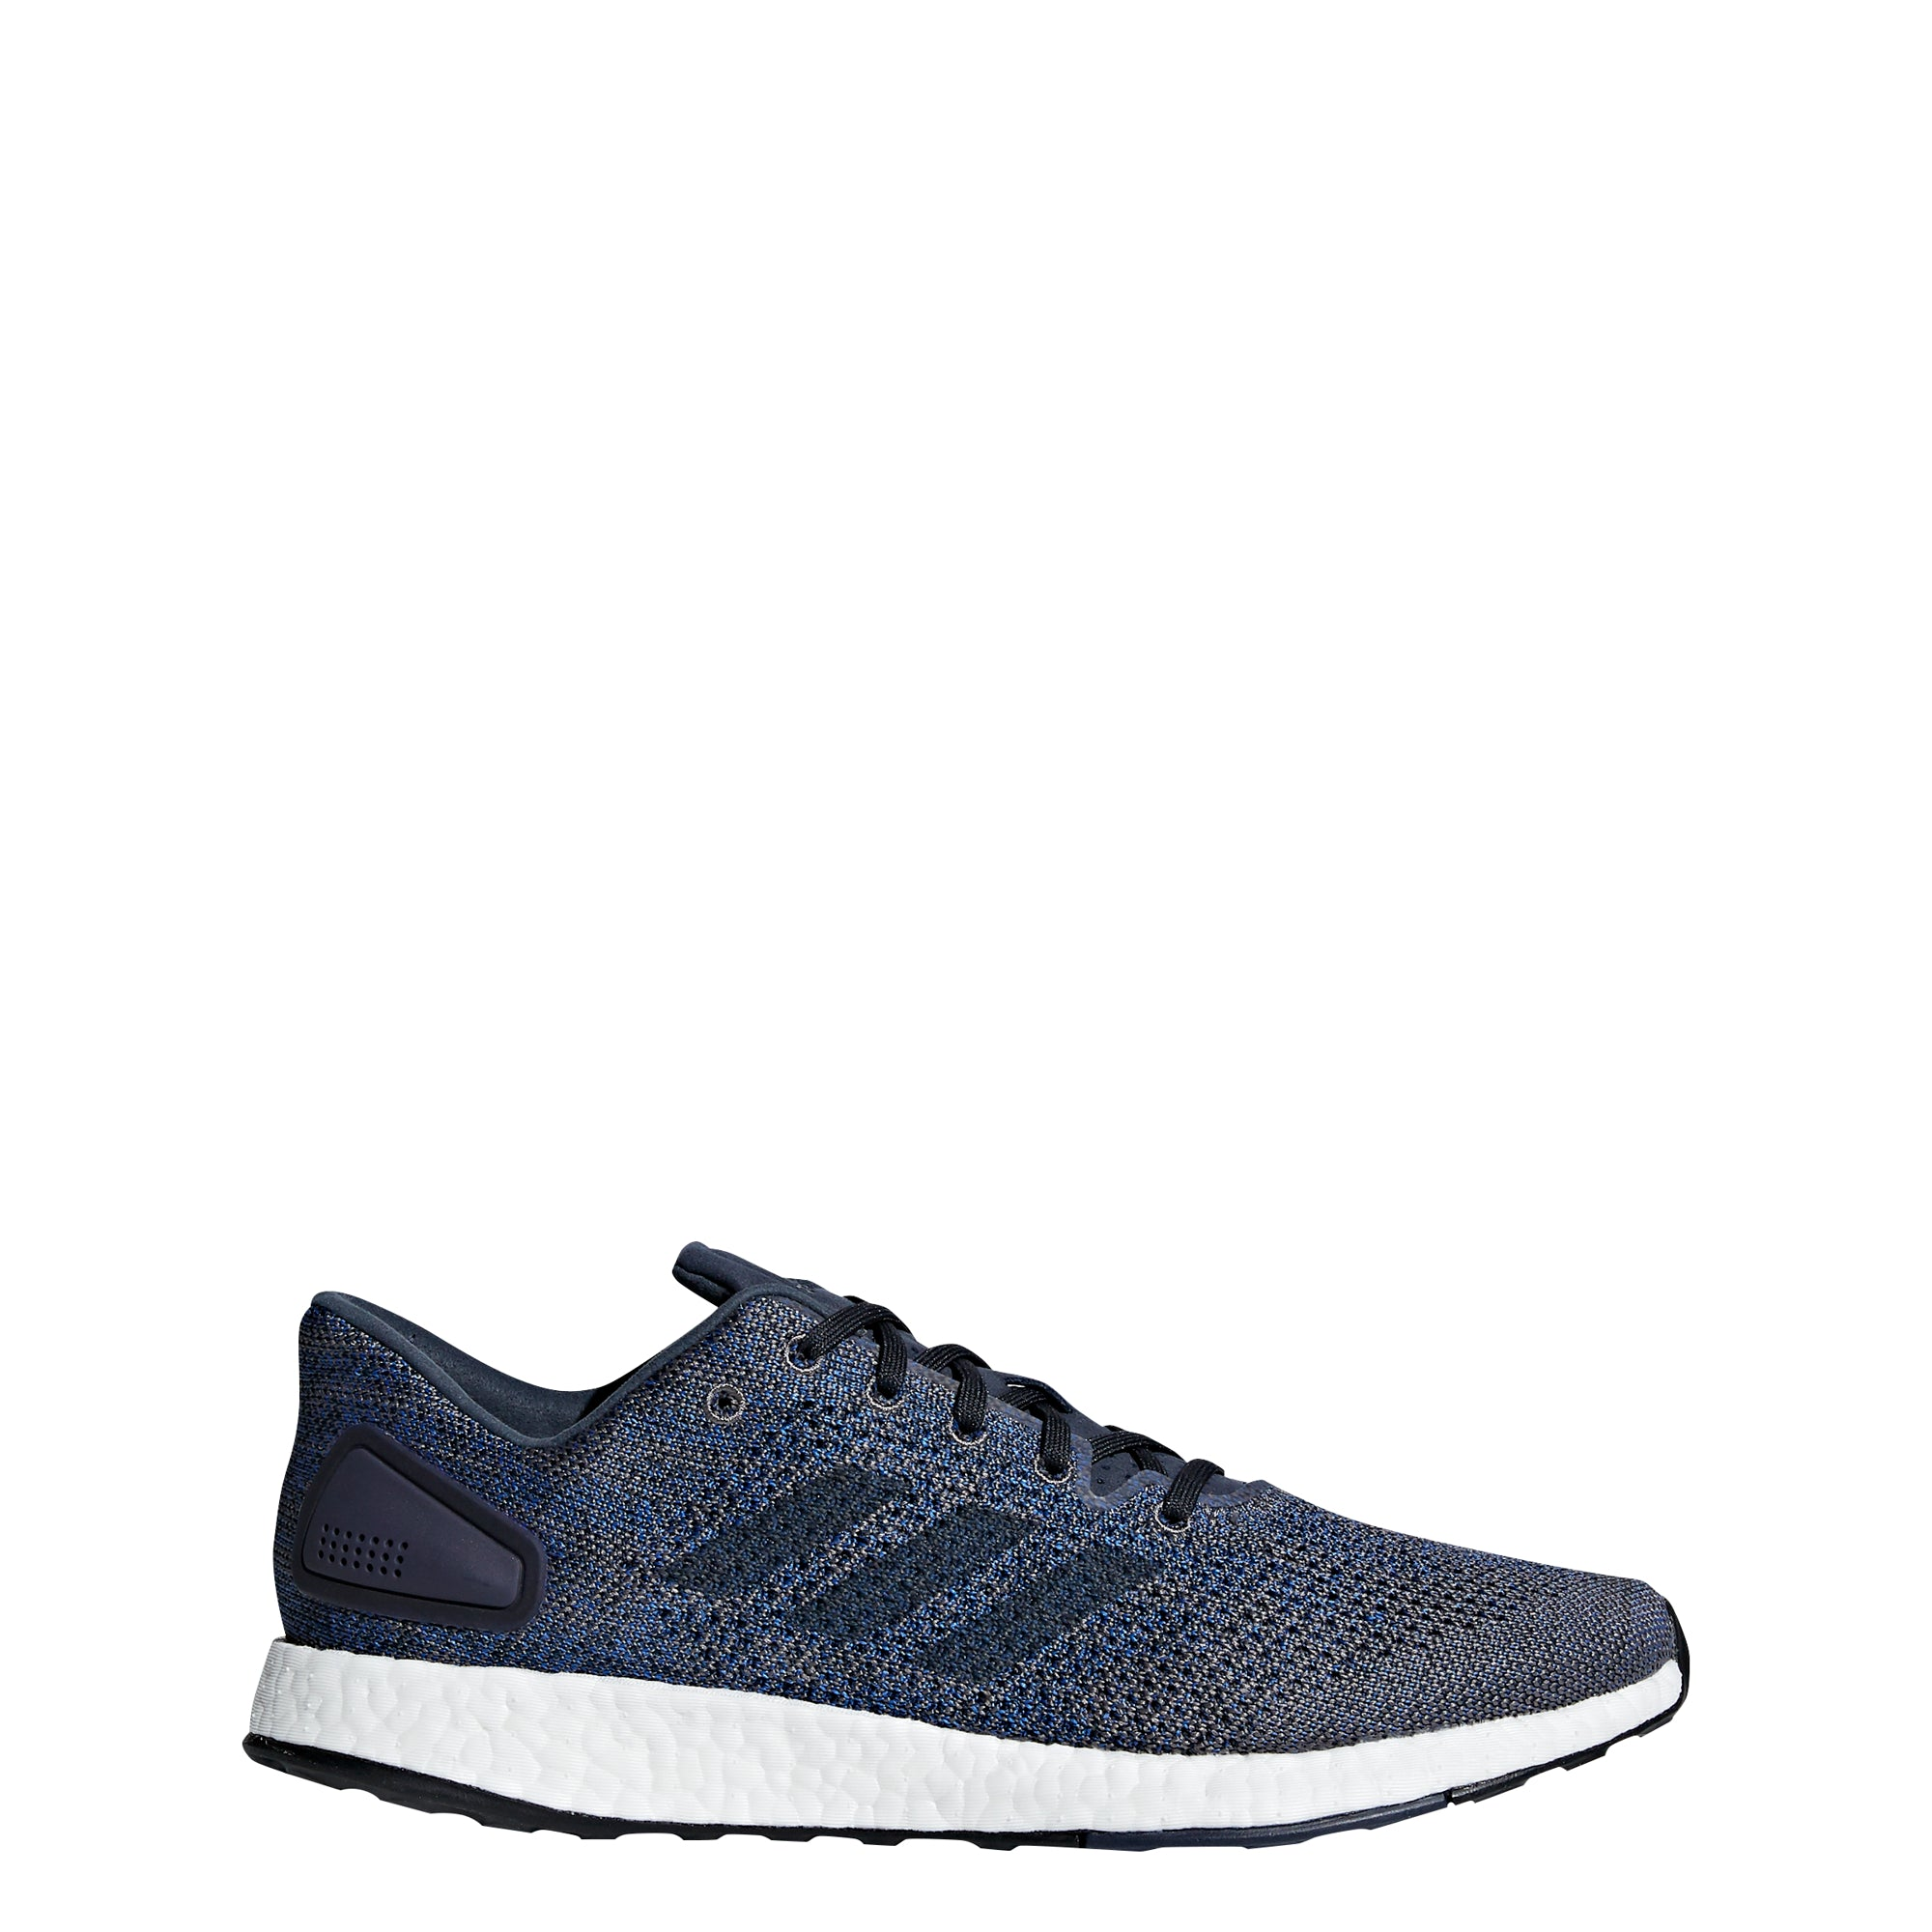 Buy adidas Men PureBOOST DPR Running Shoes, Blue in Singapore - Royal  Sporting House